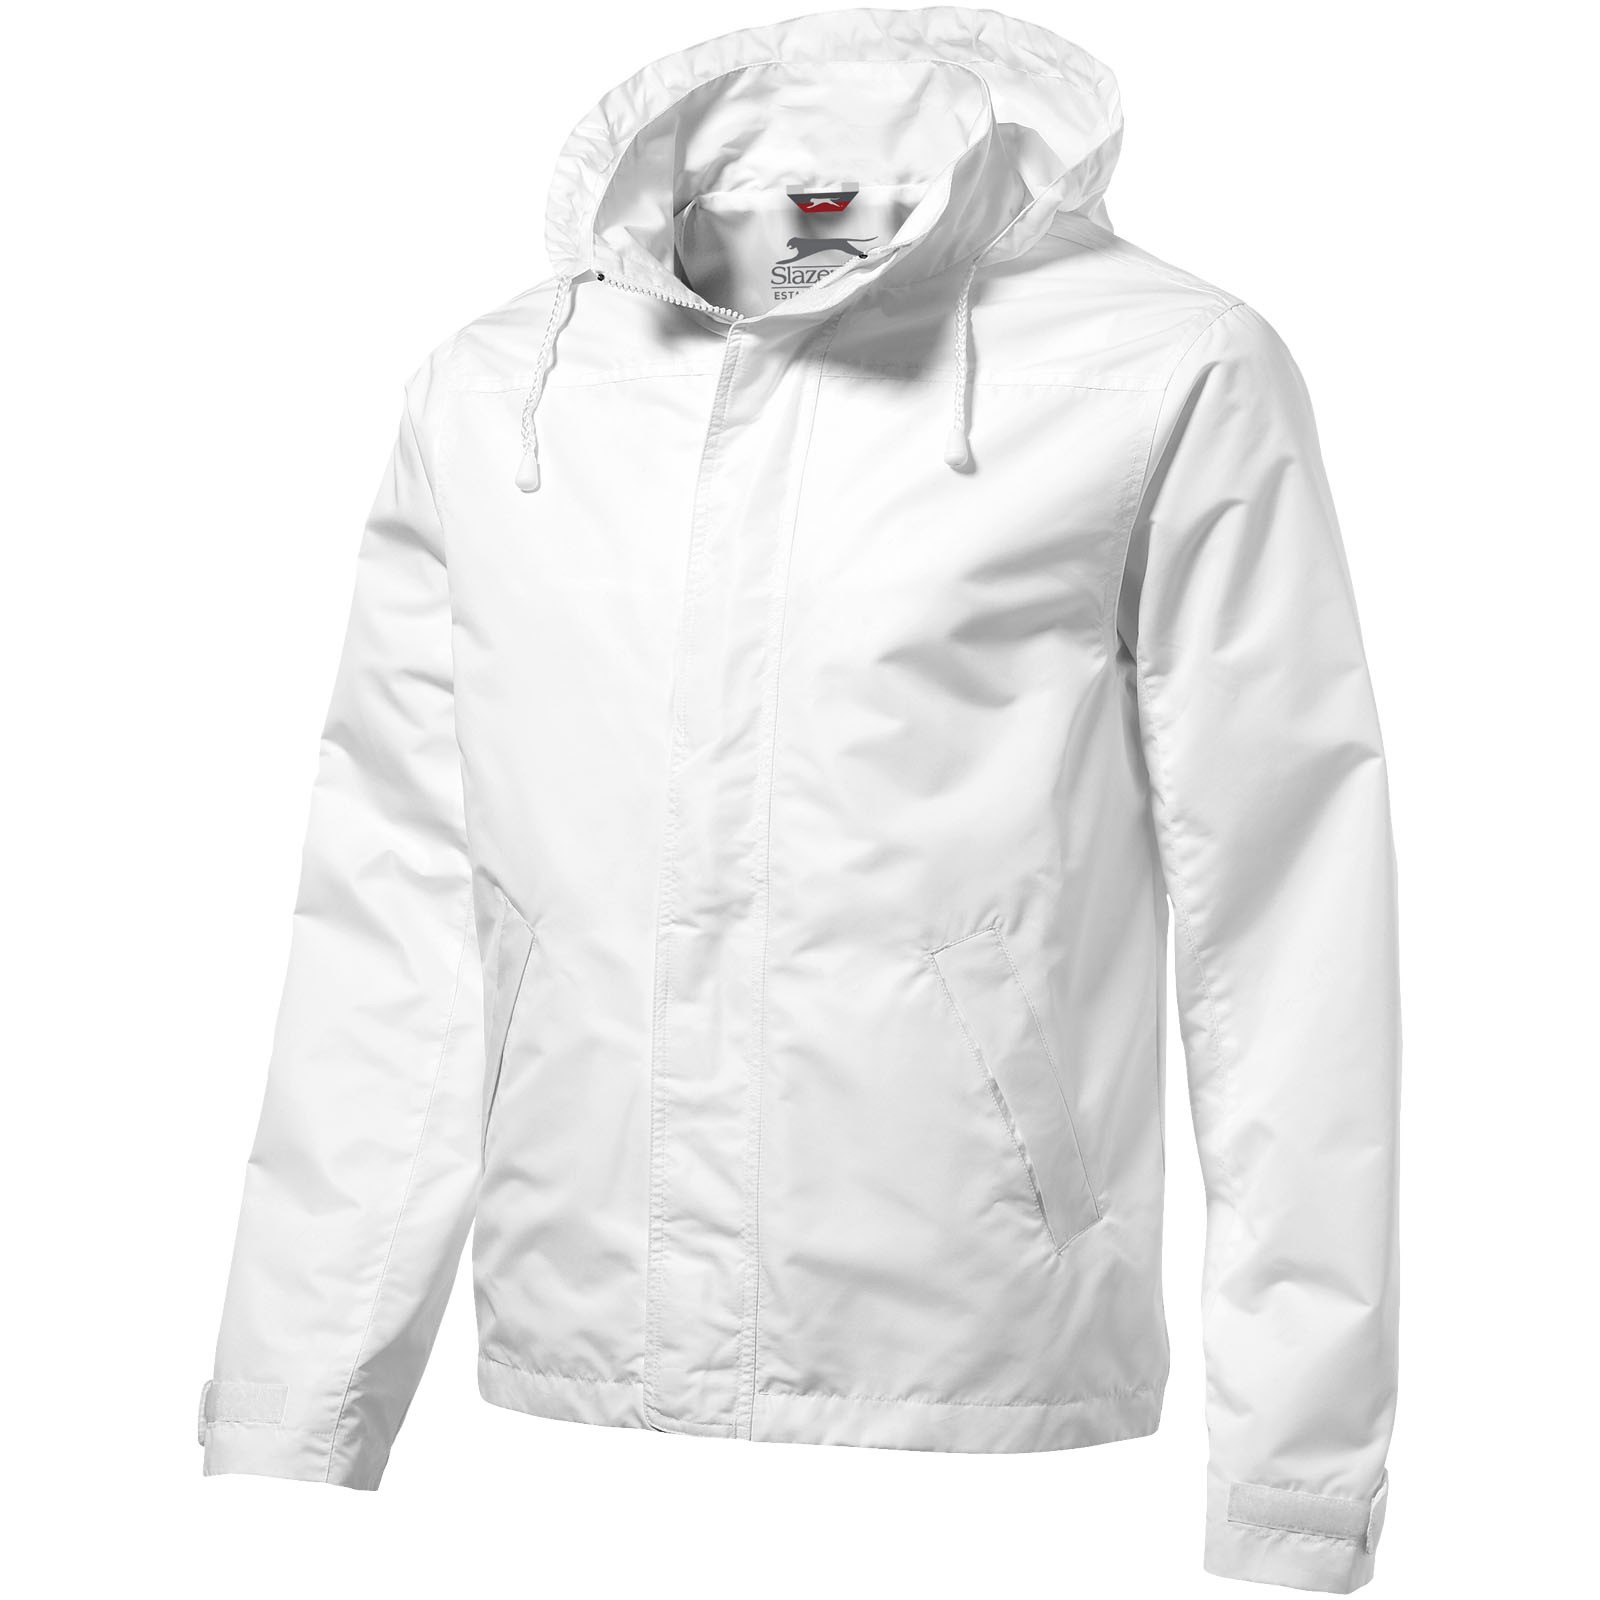 Top Spin jacket - White / S